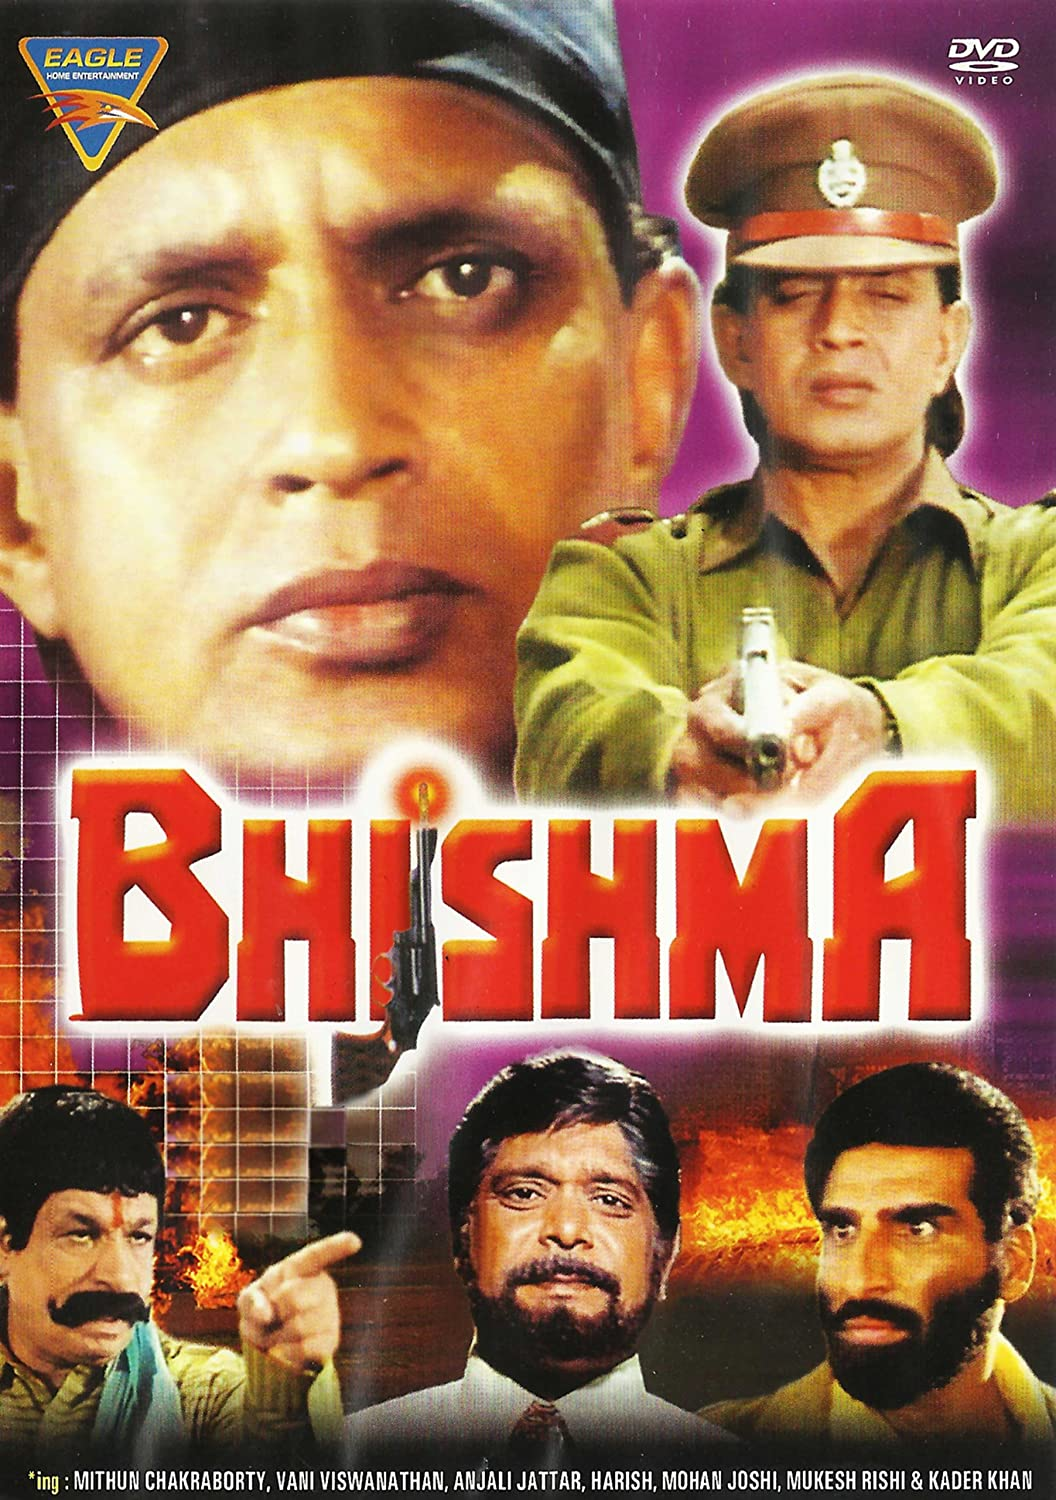 Bhishma Amazon In Mithun Chakraborty Harish Anjali Jathar Jagdish A Sharma Mithun Chakraborty Harish Movies Tv Shows